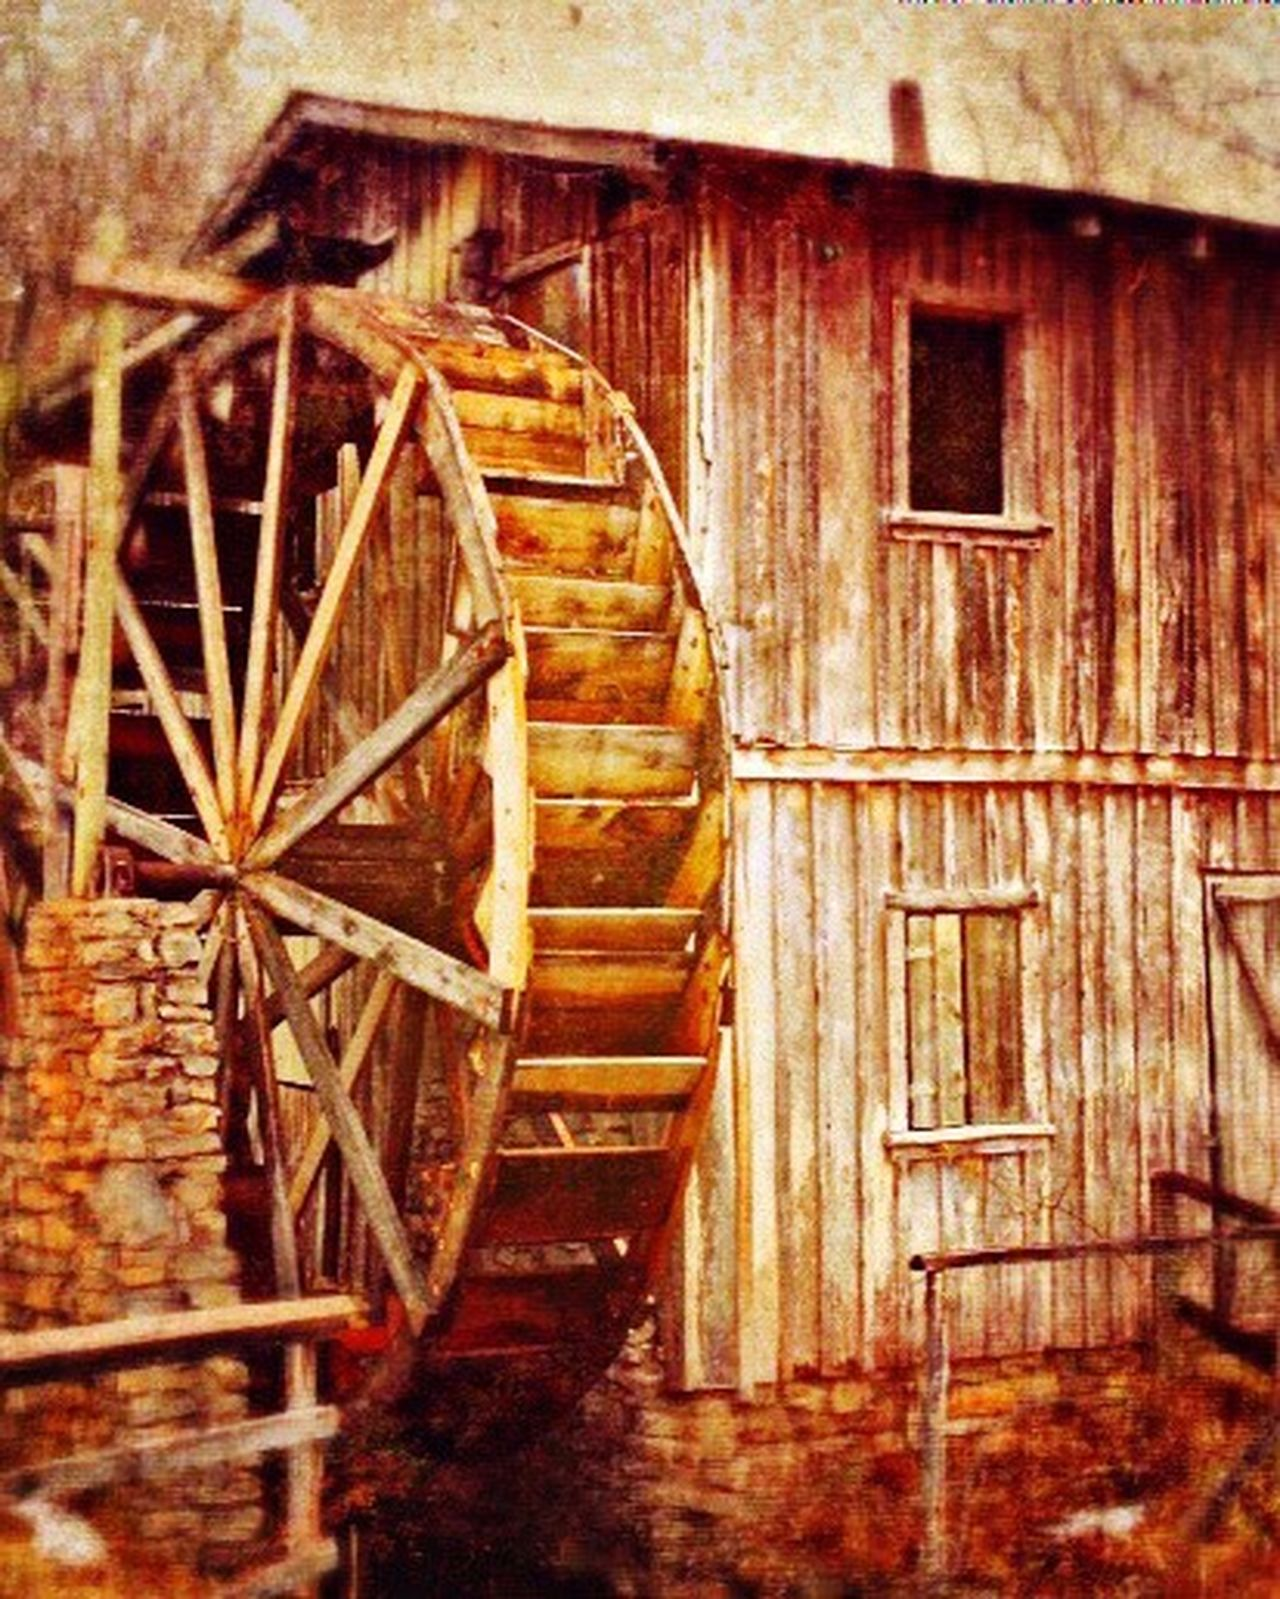 Wood - Material Water Wheel Outdoors Built Structure Wheel No People Building Exterior Abandoned Weathered Architecture Old-fashioned Day Watermill Cabin Nature Close-up IPhoneography Streamzoofamily Shootermag_usa Malephotographerofthemonth Non-urban Scene Mobiography